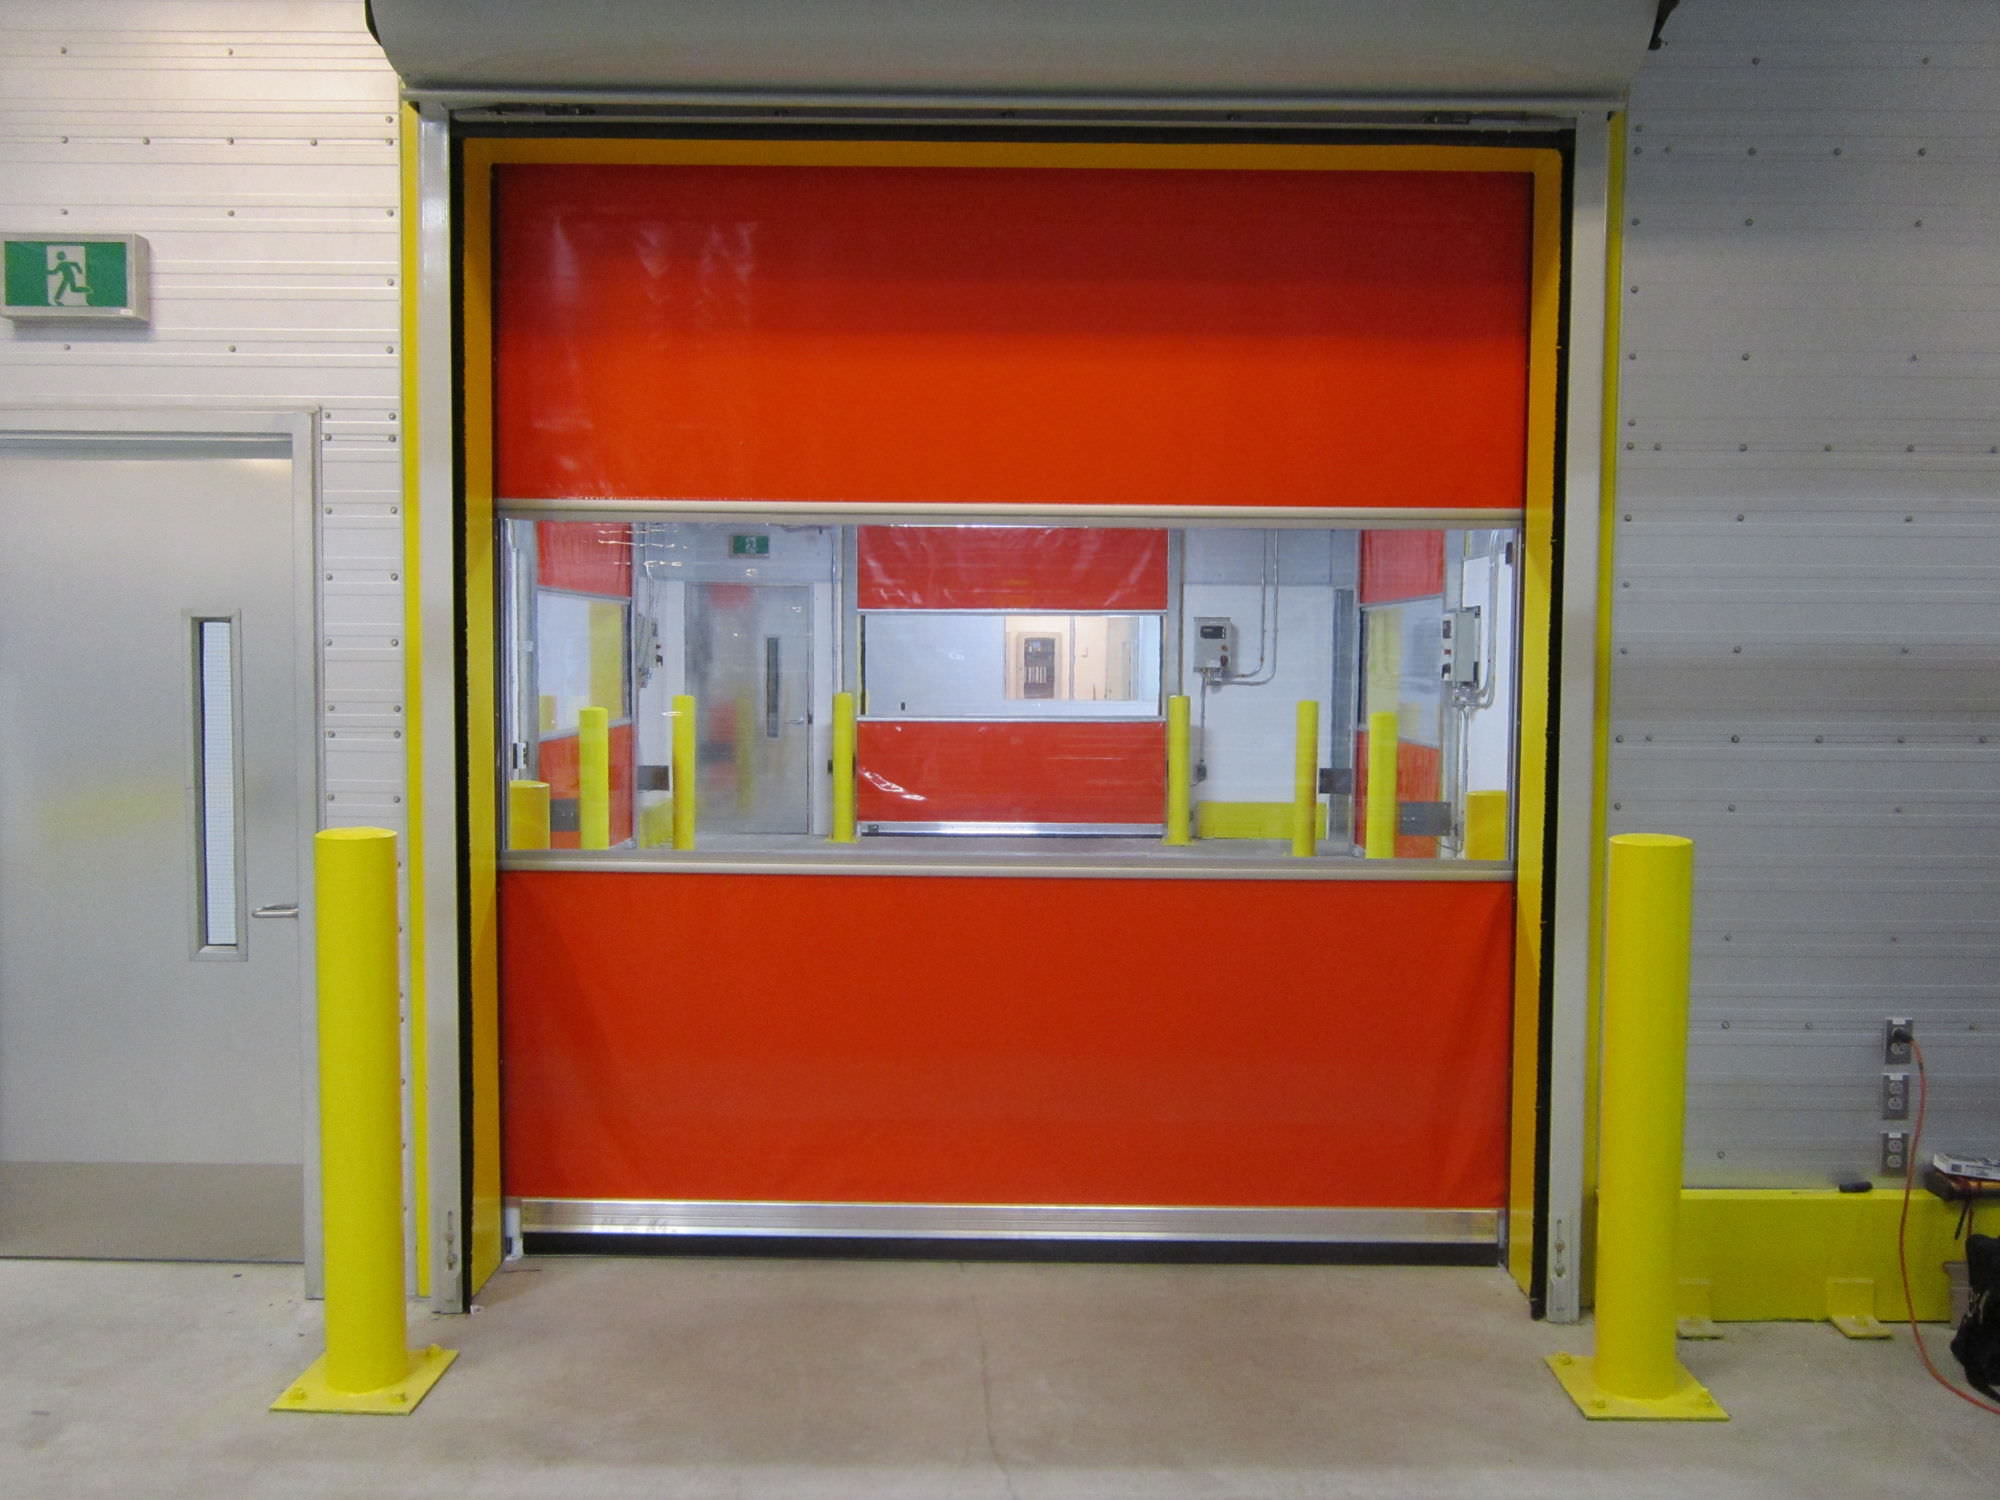 Appearance of High Speed PVC Roll Up Doors